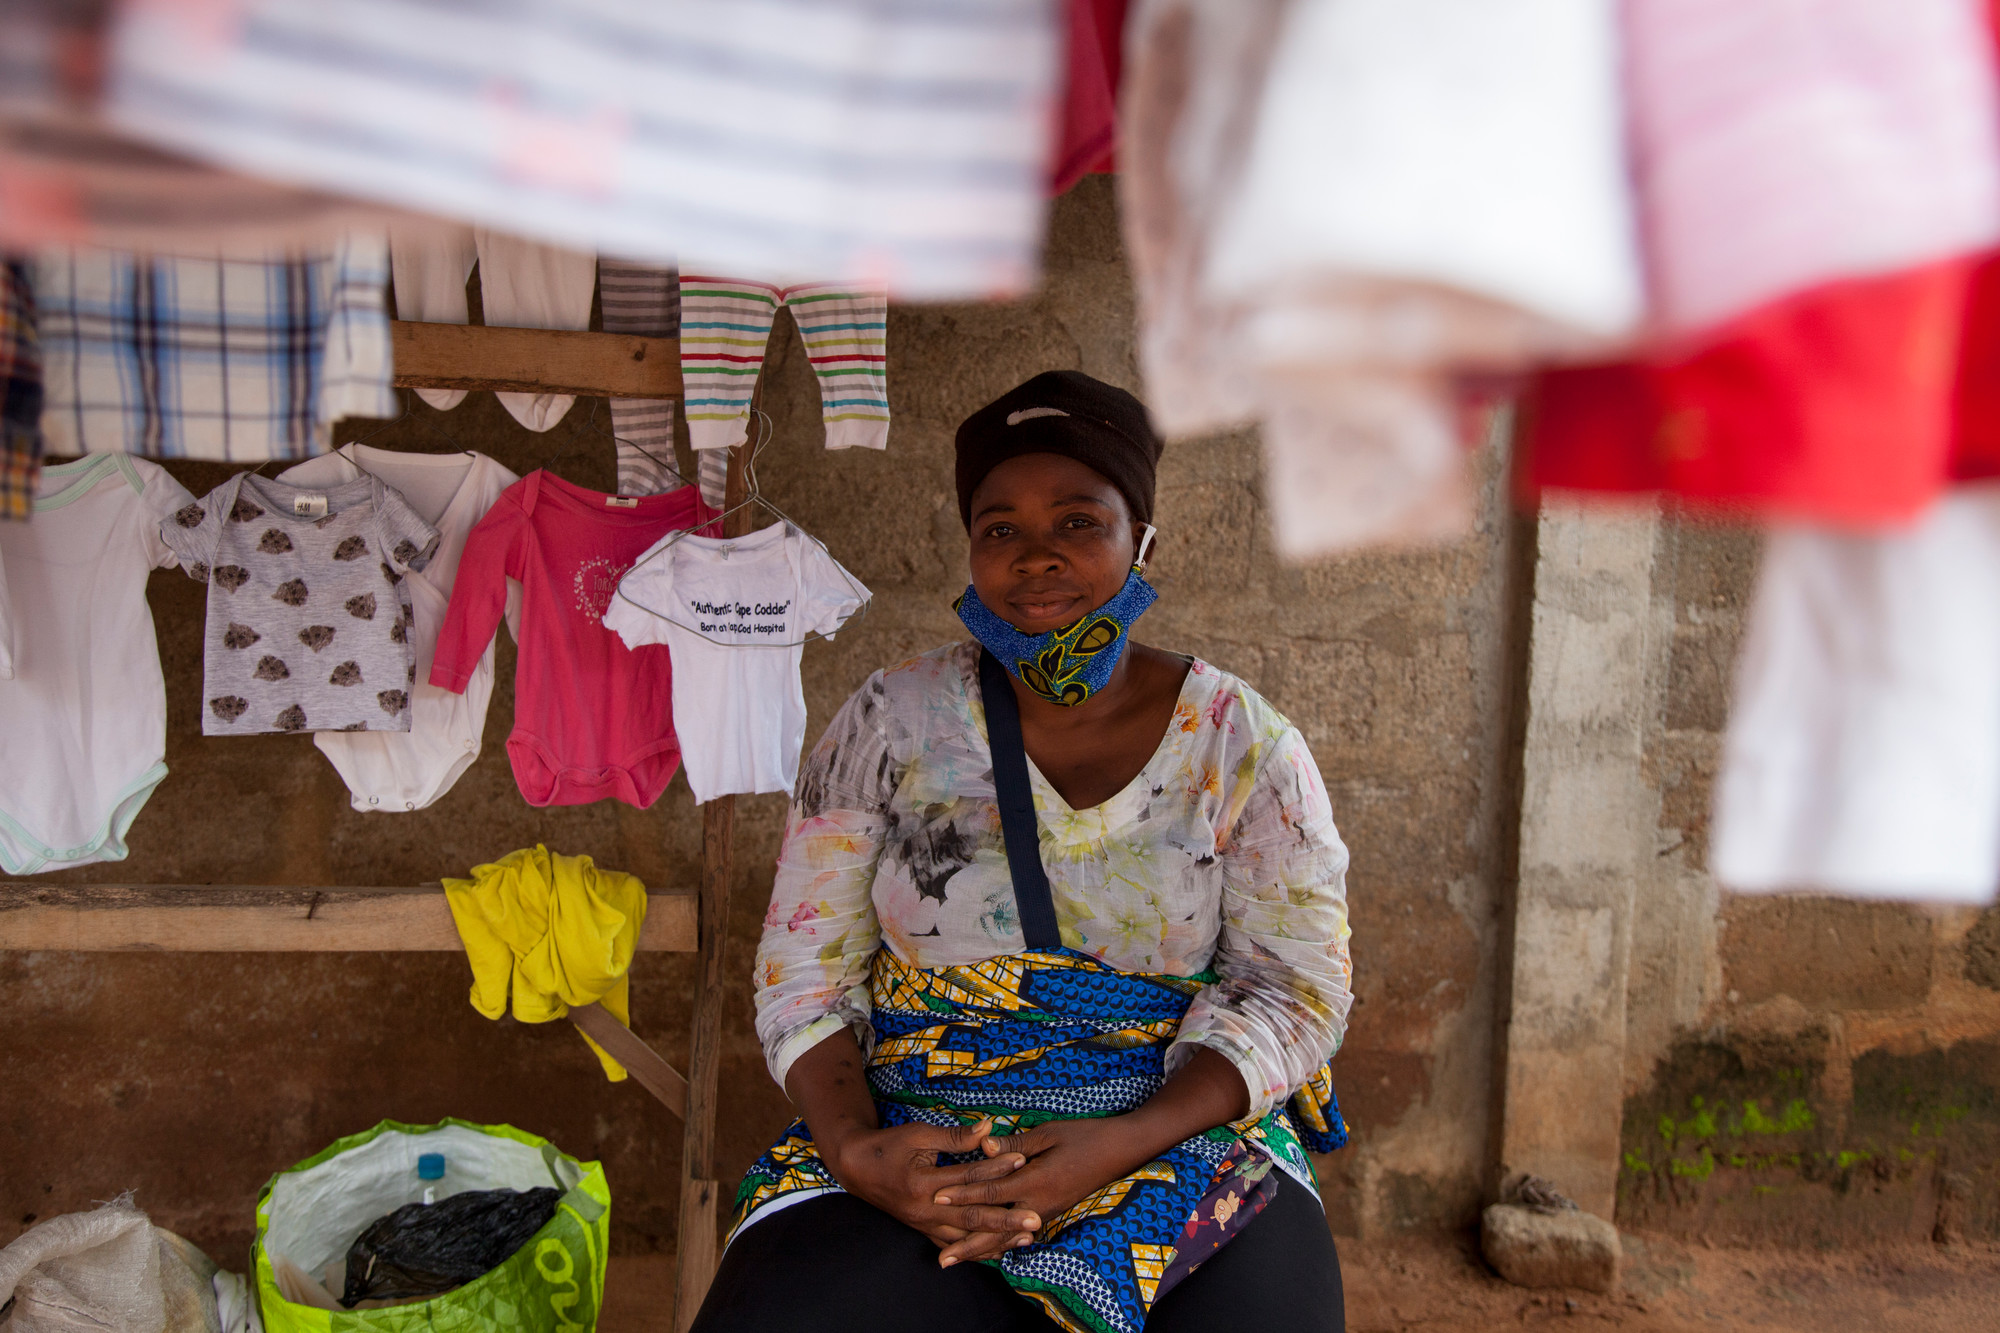 A woman sits in a stall selling clothes in an open-air market.